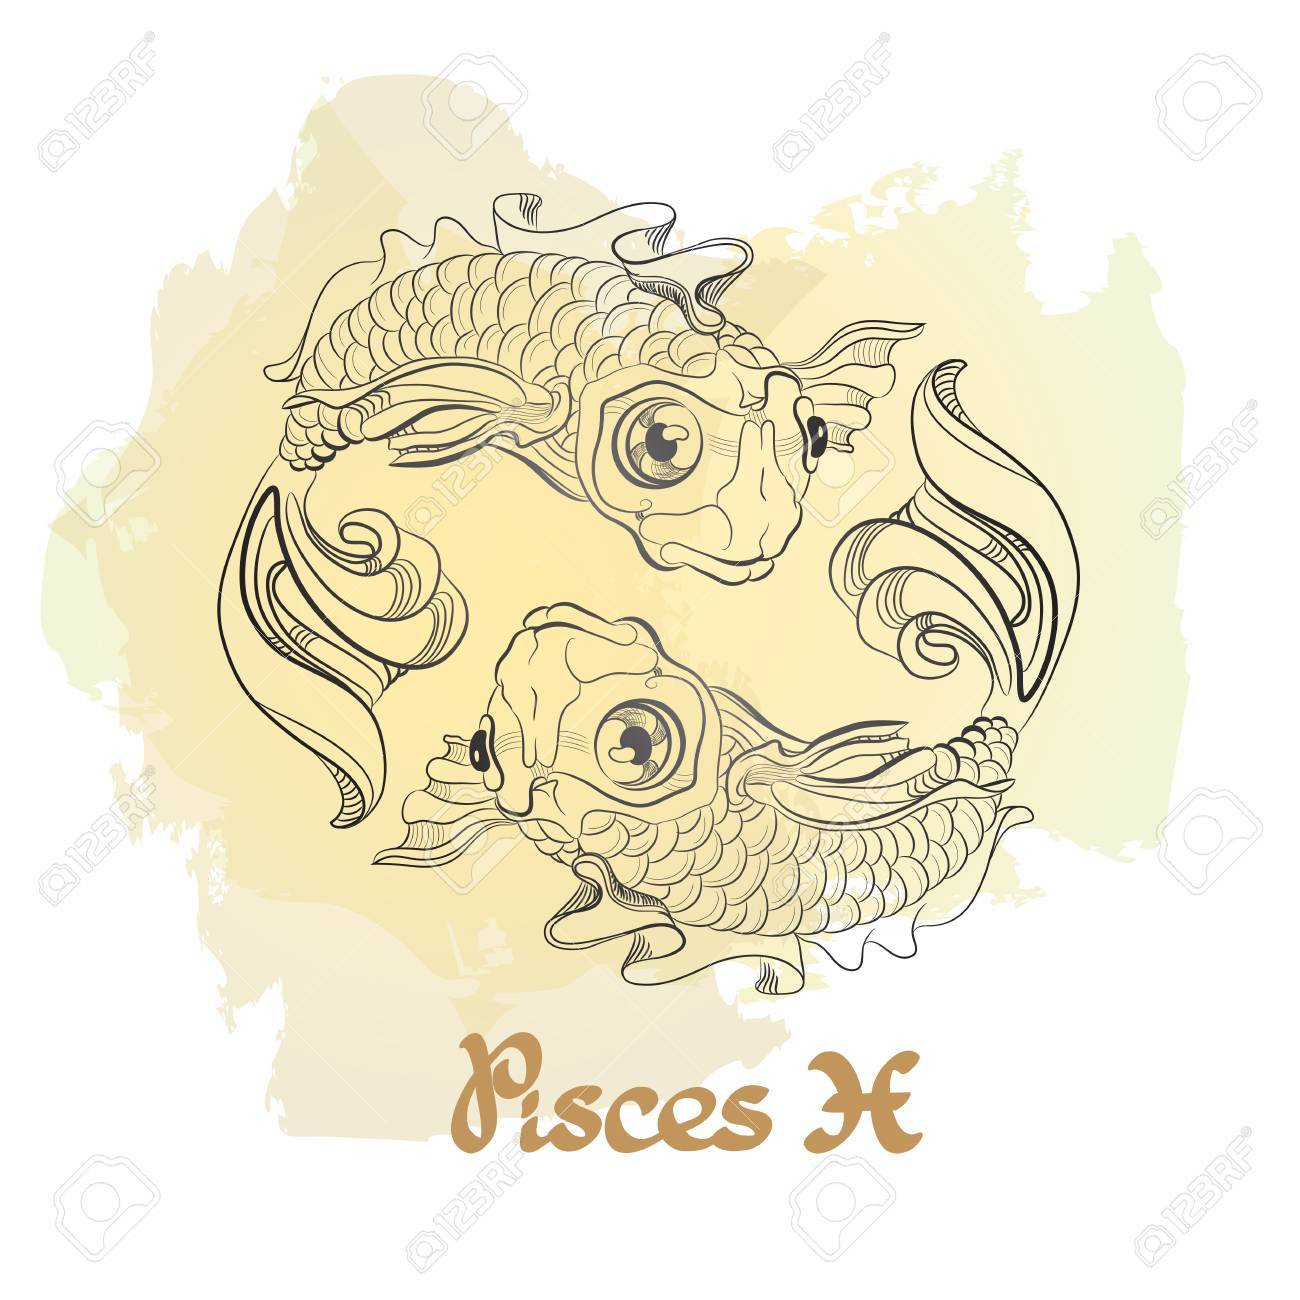 Hand Drawn Line Art Of Decorative Zodiac Sign Pisces Royalty Free